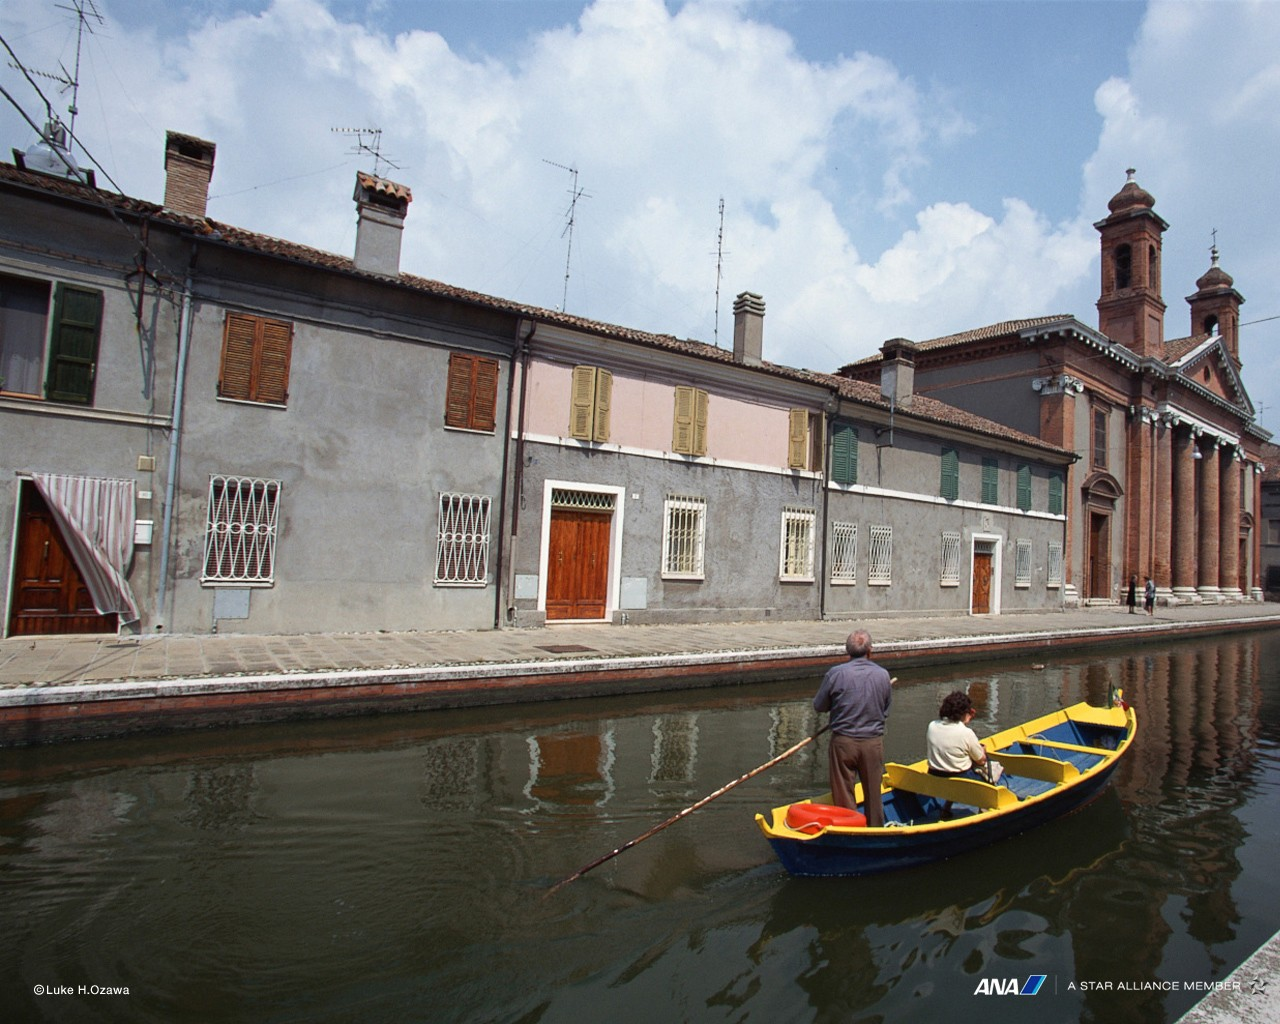 Boating town in Europe 30180